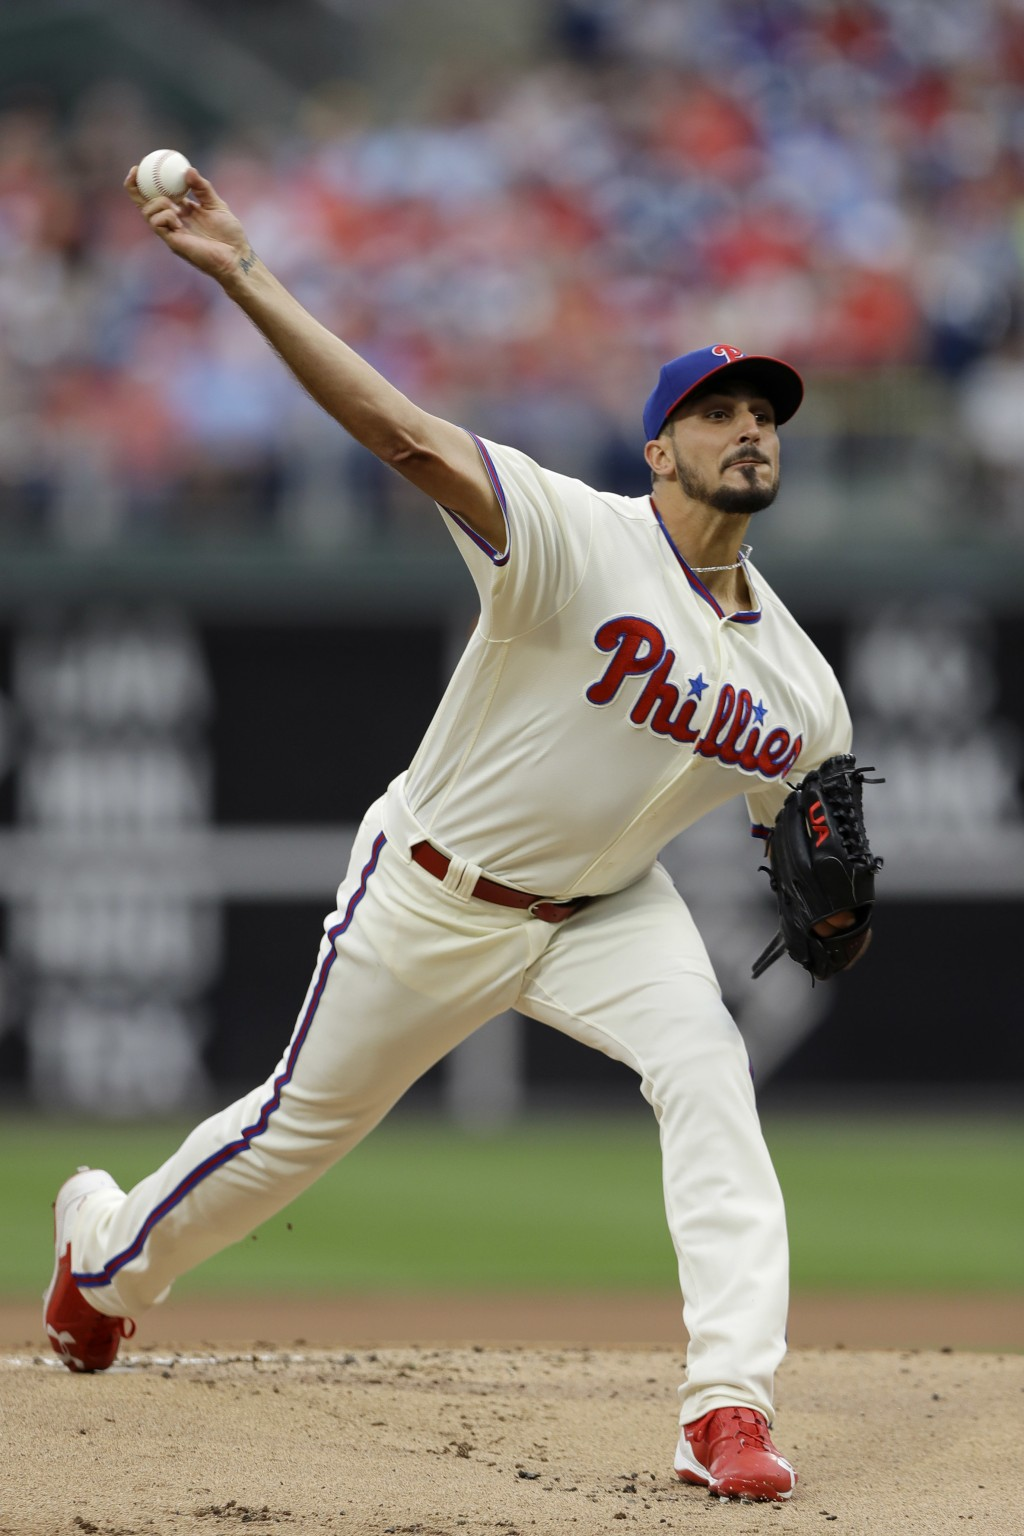 Philadelphia Phillies' Zach Eflin pitches during the first inning of a baseball game against the Milwaukee Brewers, Sunday, June 10, 2018, in Philadel...